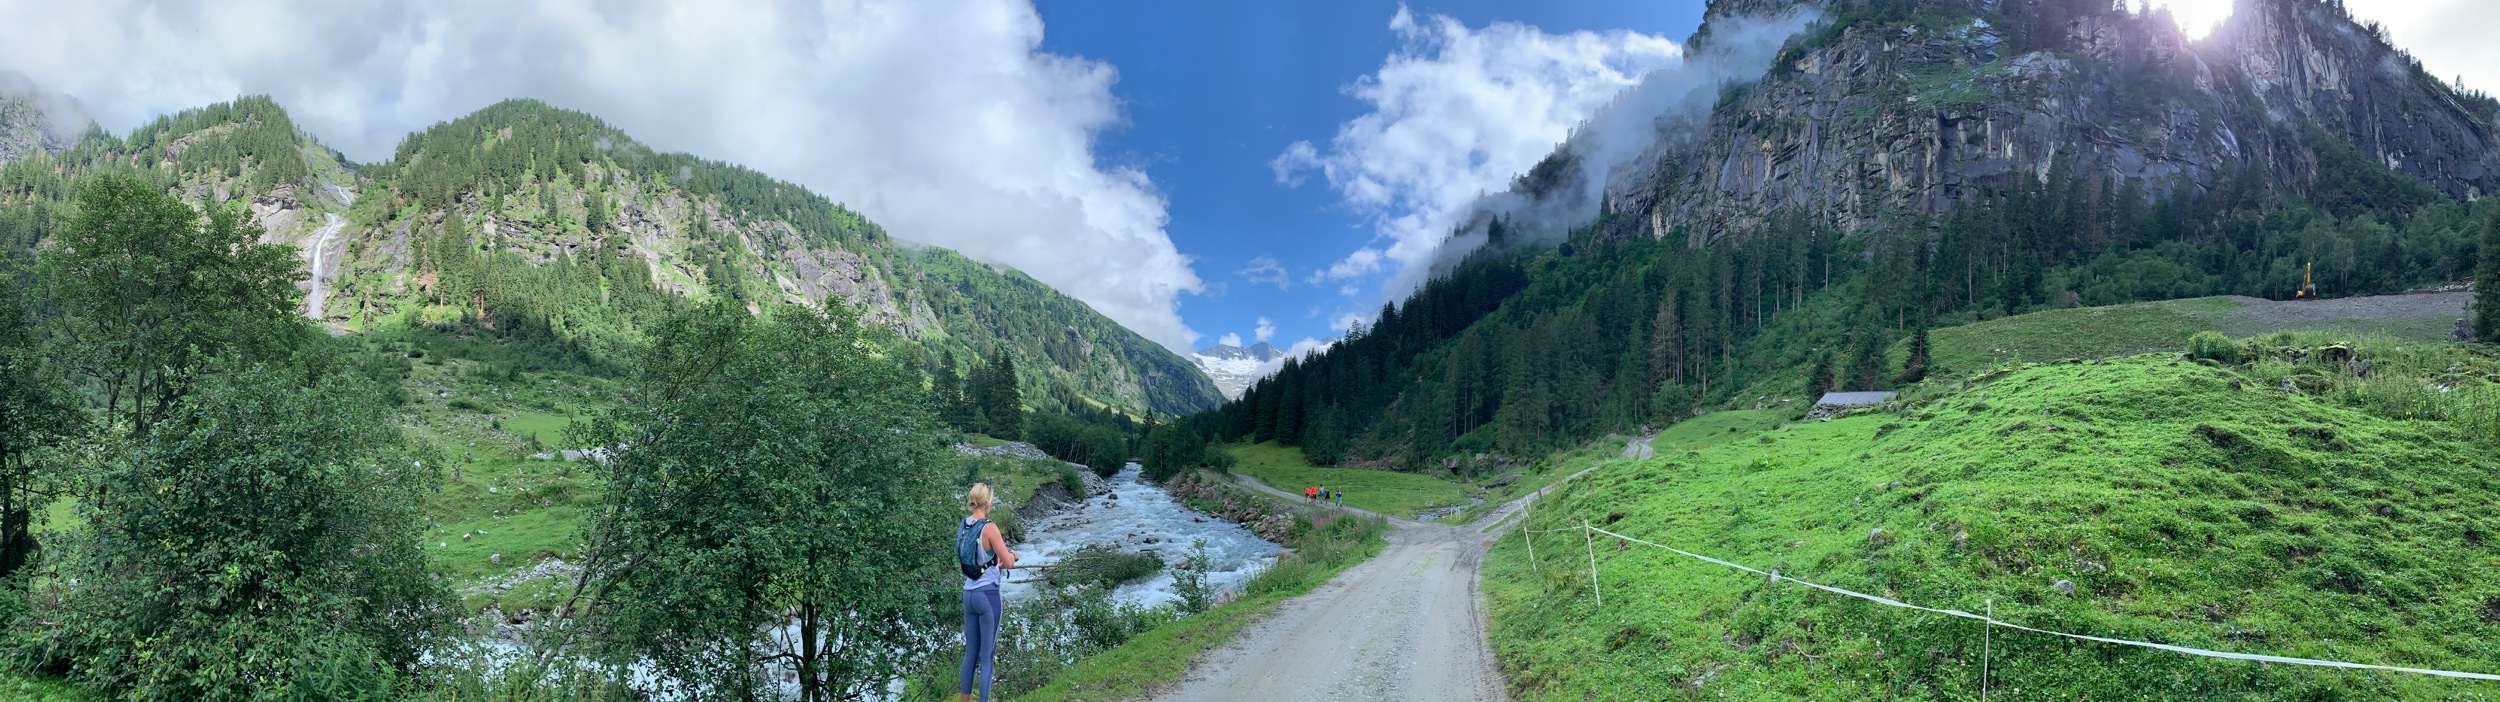 One of the many beautiful valleys and walking trails in Austria. This one, starting at the tiny village of Ginsing.